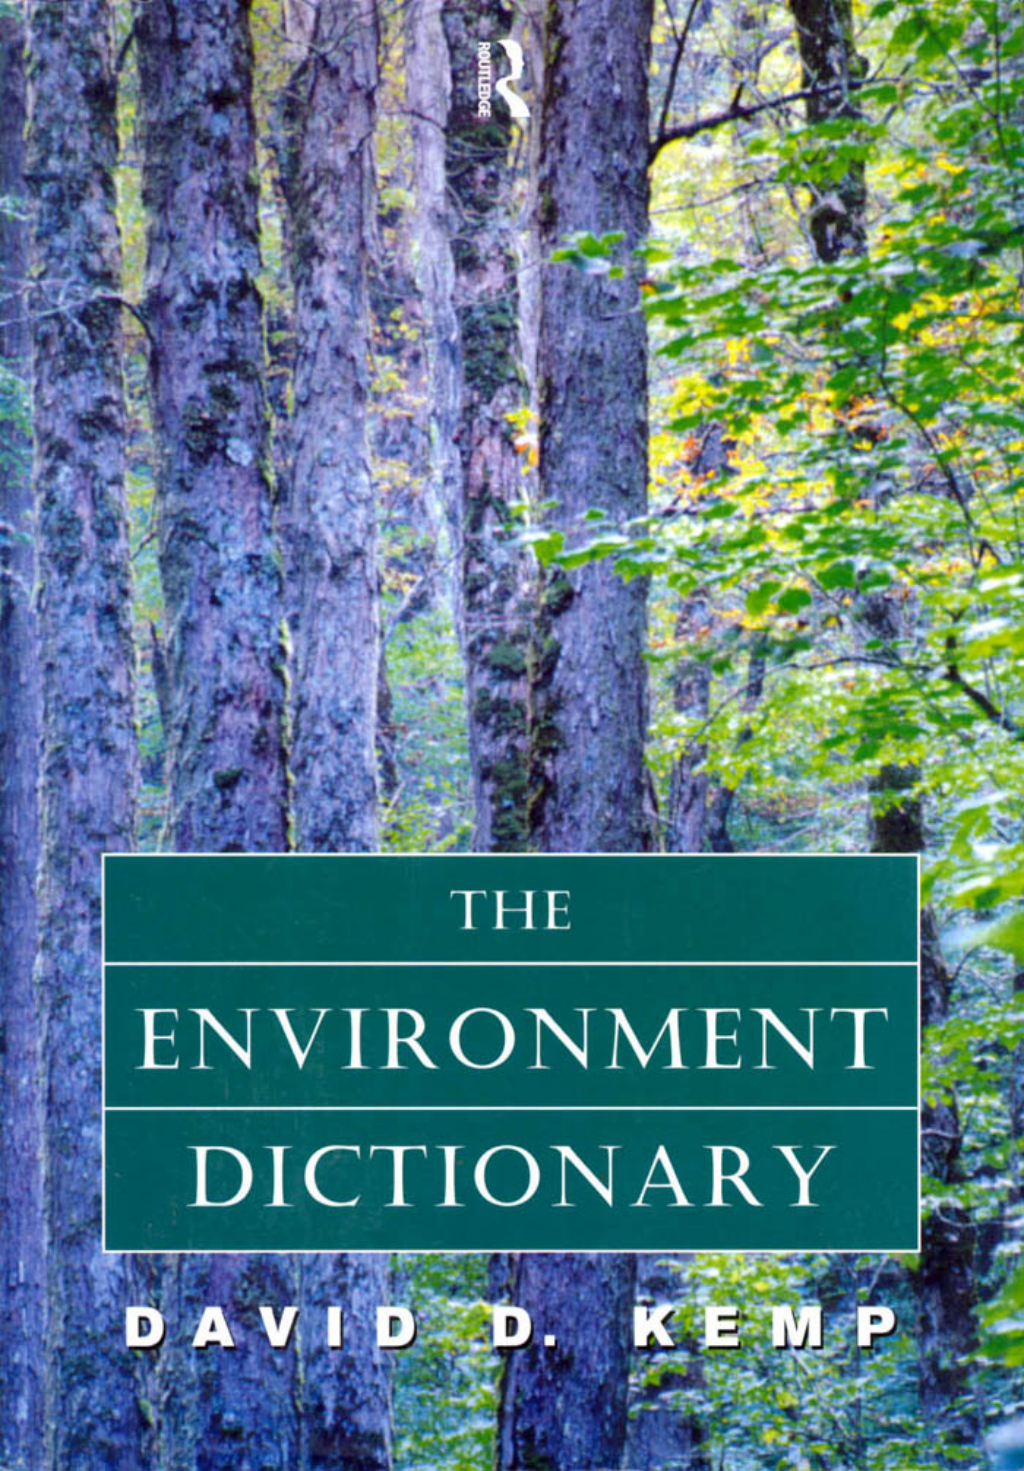 The Environment Dictionary